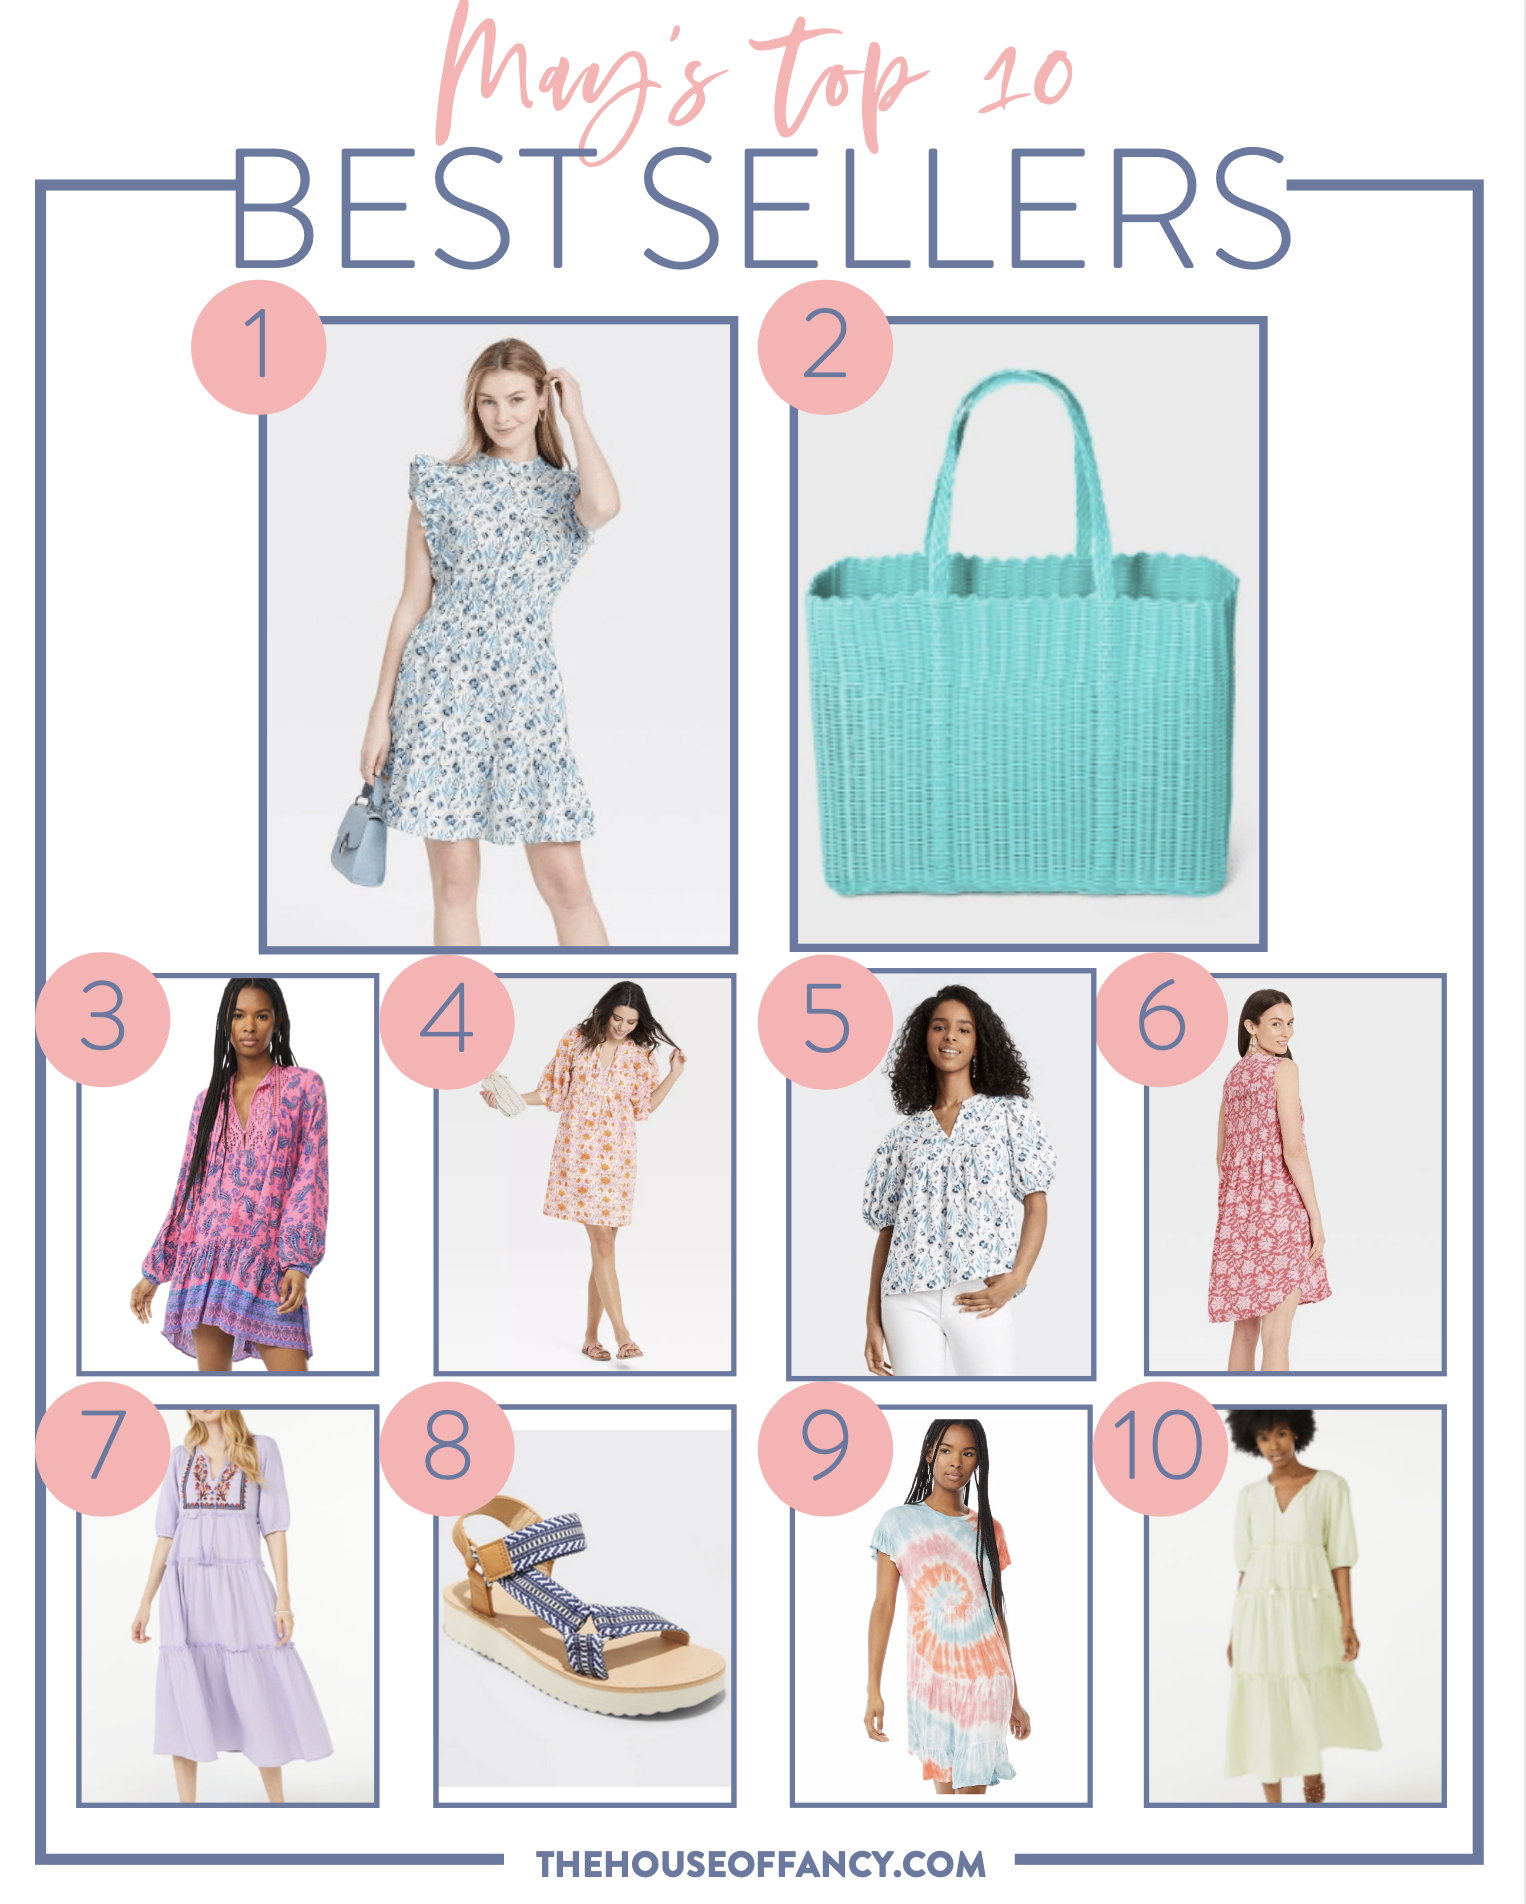 Best Sellers by popular Houston fashion blog, The House of Fancy: collage image of a blue and white floral print flutter sleeve dress, woven blue tote bag, pink and blue paisley print dress, white and blue flora print puff sleeve top, pink and white floral print sleeveless dress, purple floral embroidered tiered maxi dress, blue and white stripe strap sandals tie dye t-shirt dress, yellow tiered maxi dress, and pink floral print dress.